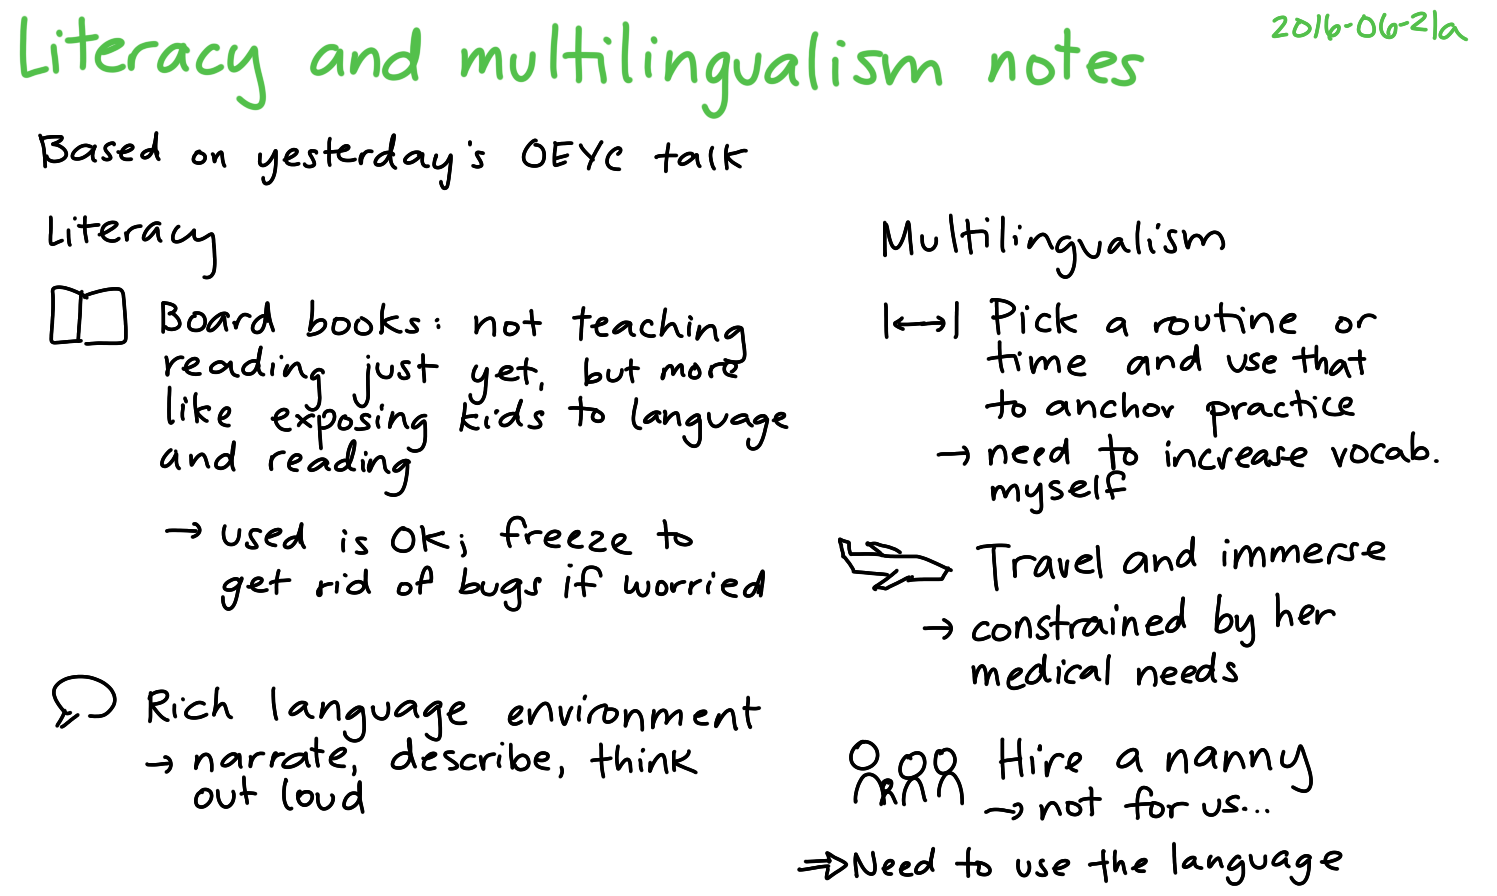 2016-06-21a Literacy and multilingualism notes -- index card #parenting #literacy #multilingualism.png